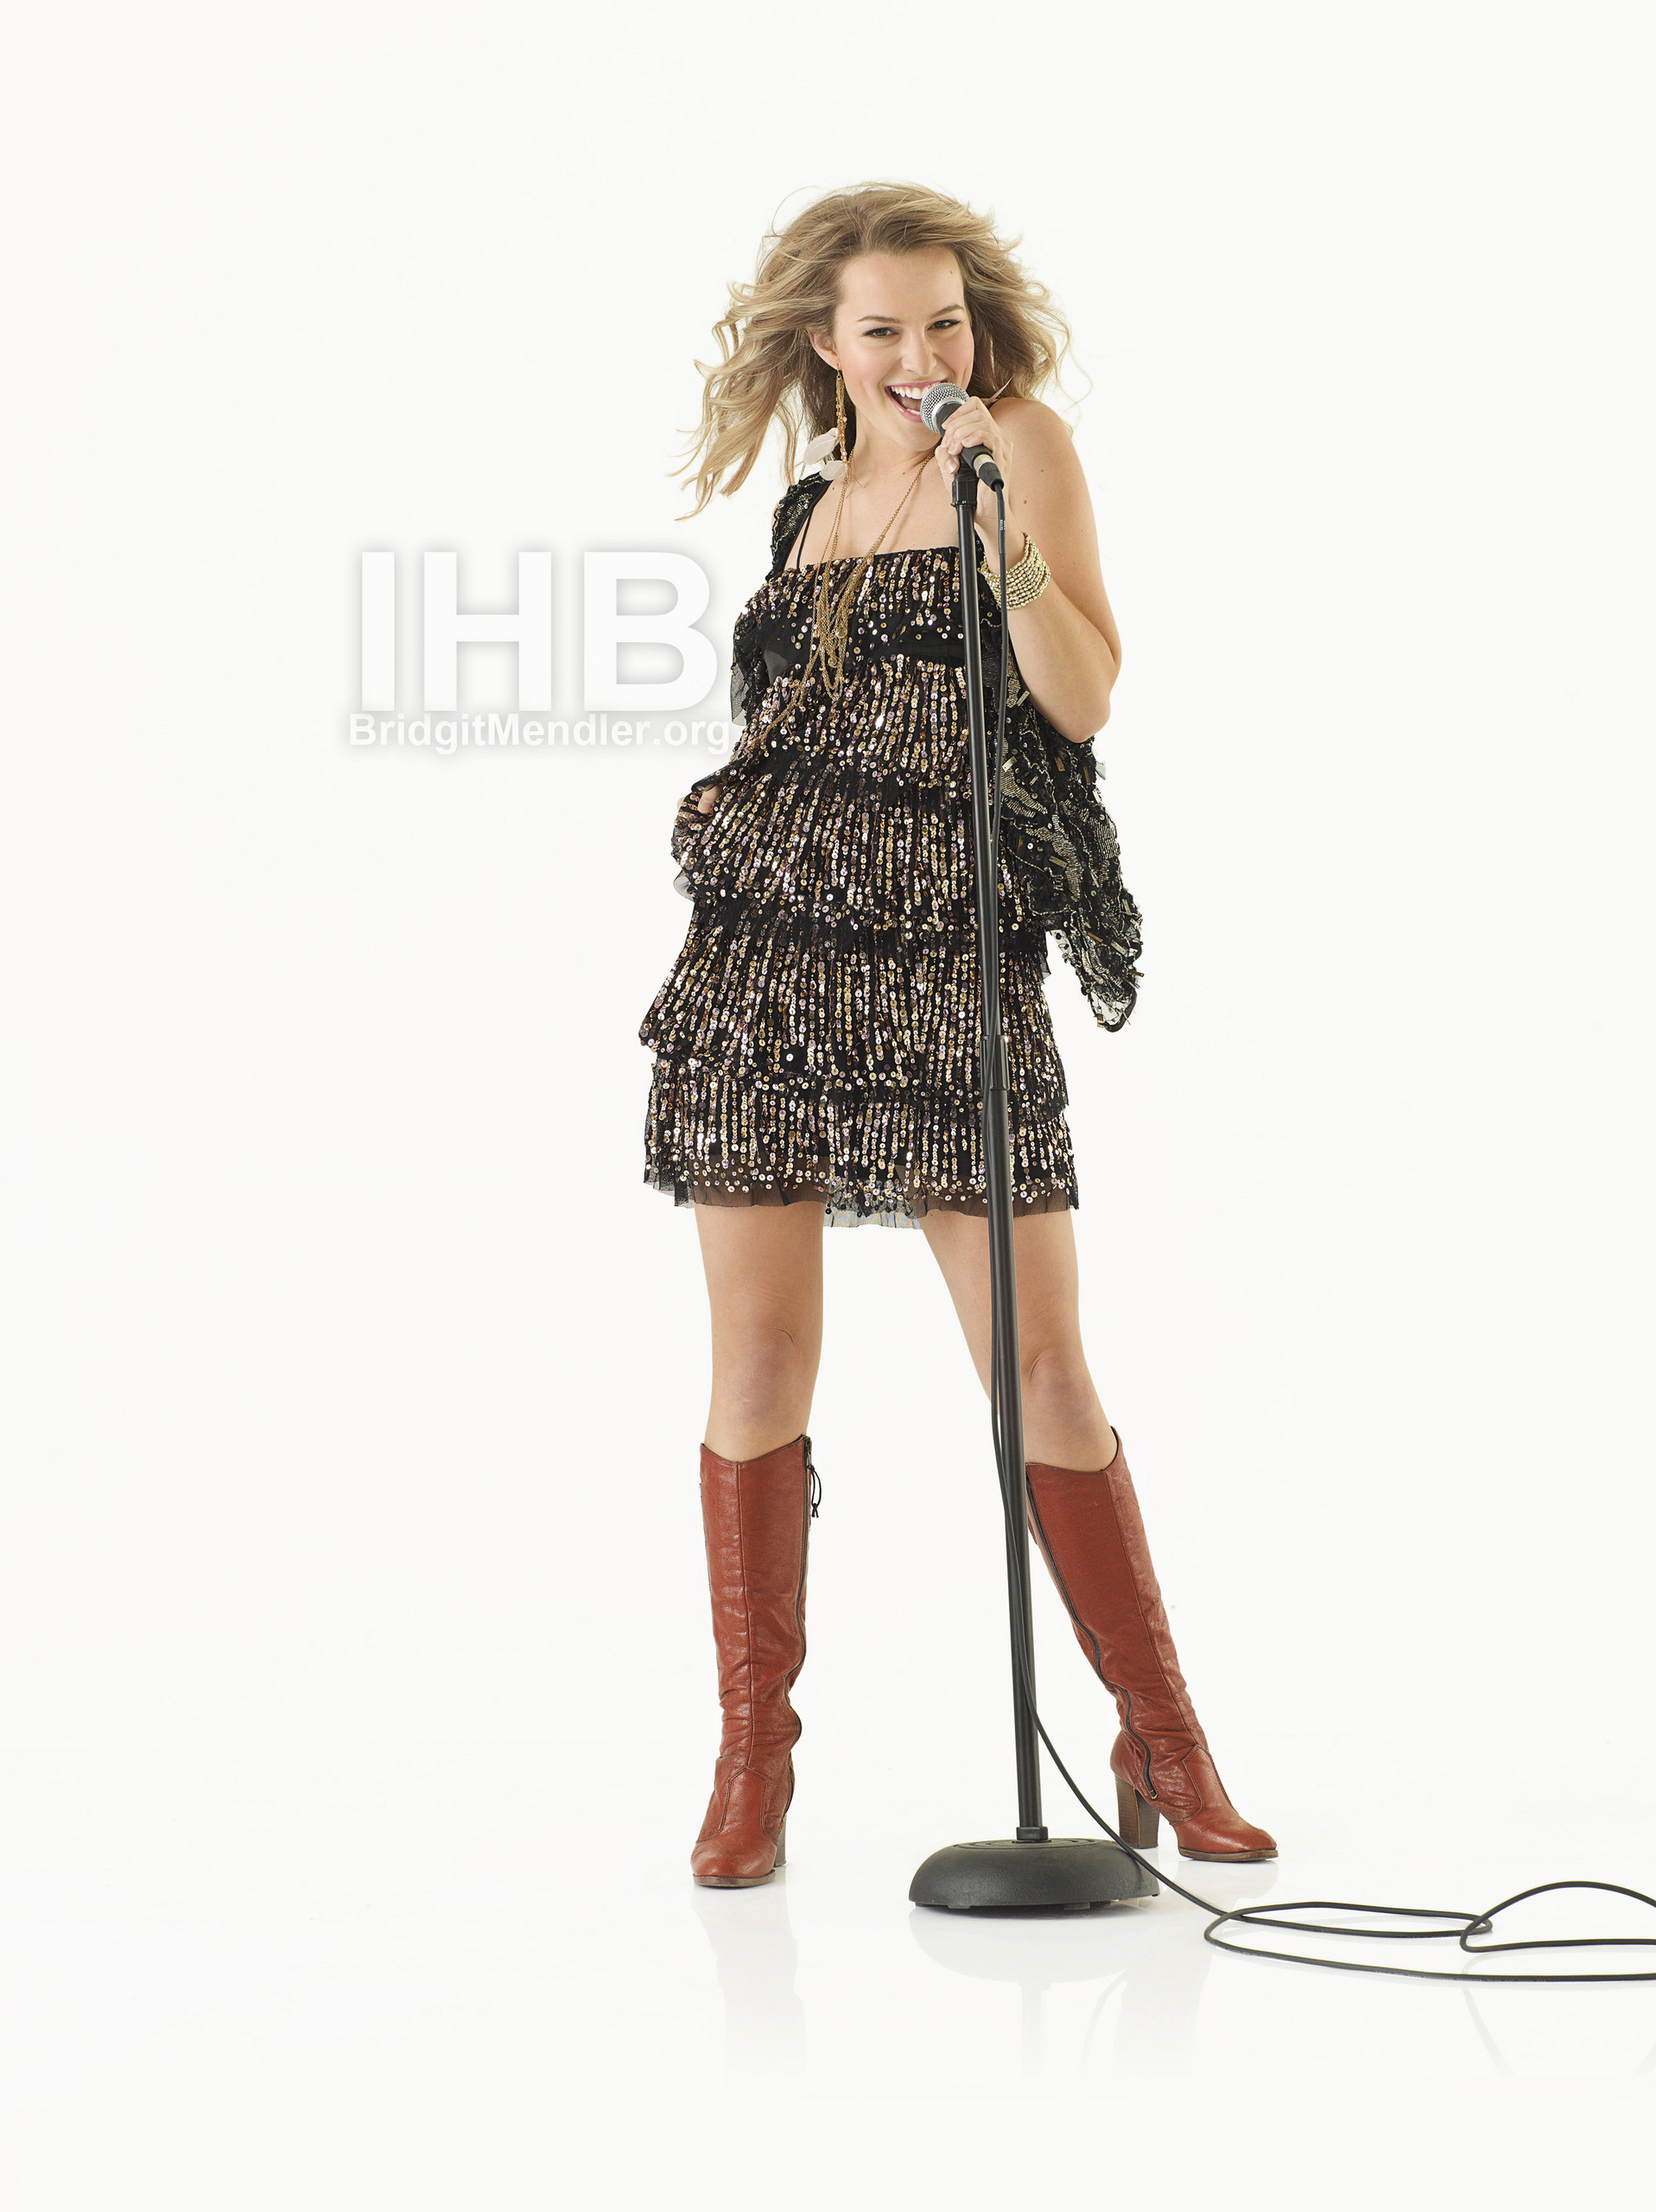 Lemonade Mouth images Bridgit Mendler wallpaper photos ...